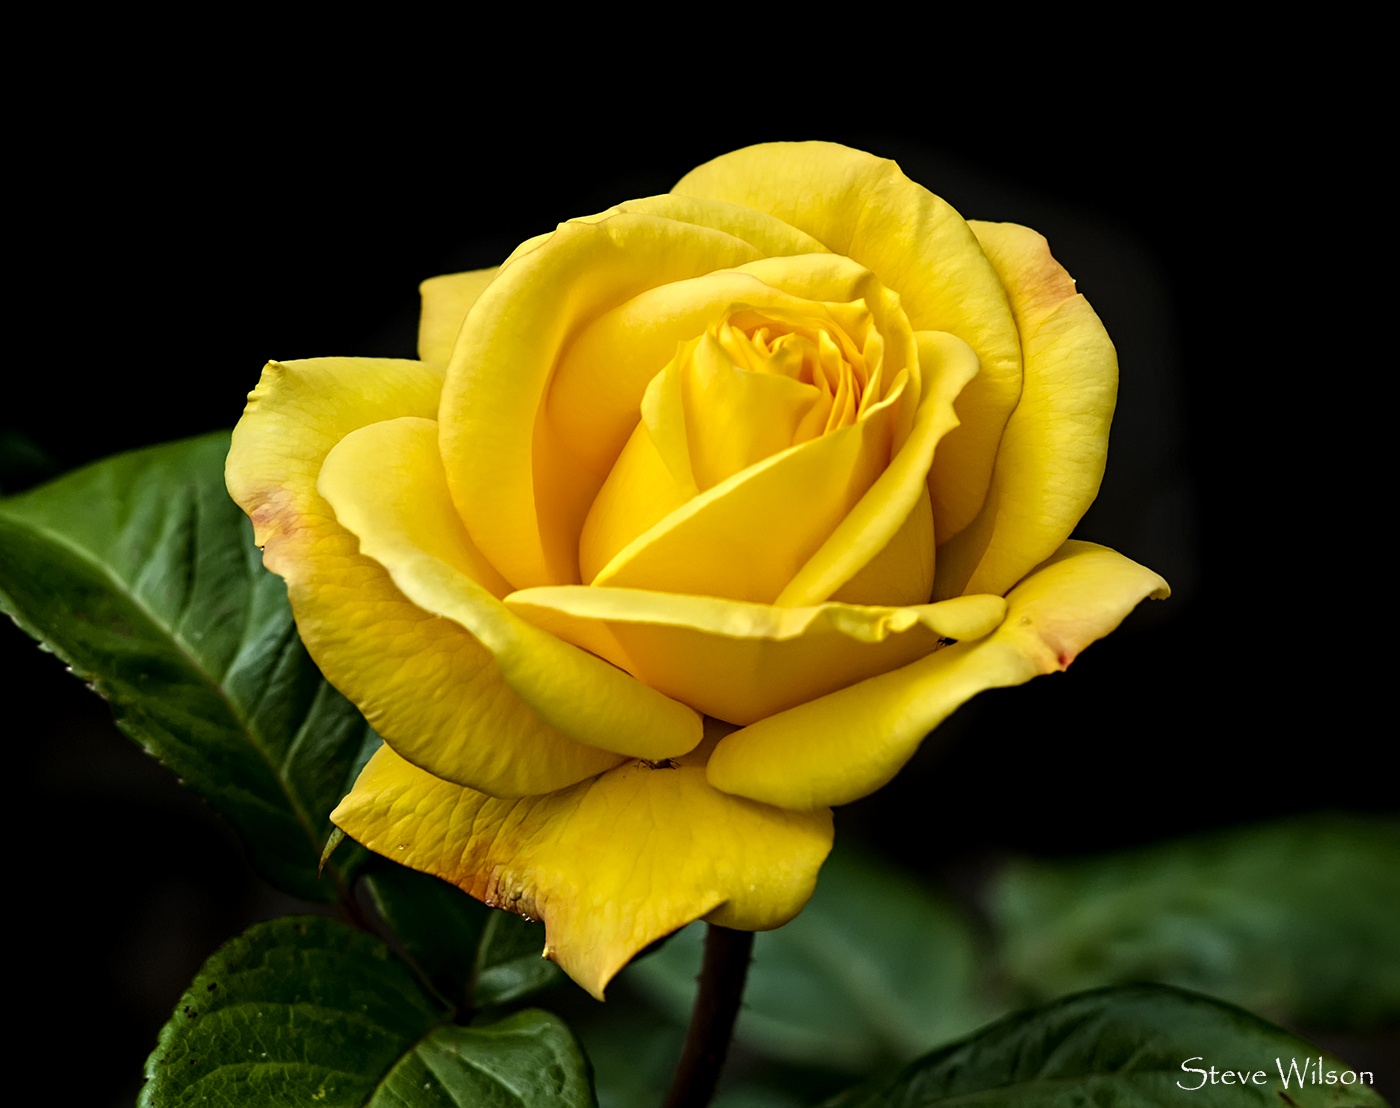 file:the yellow rose of texas . possibly (9014402234)